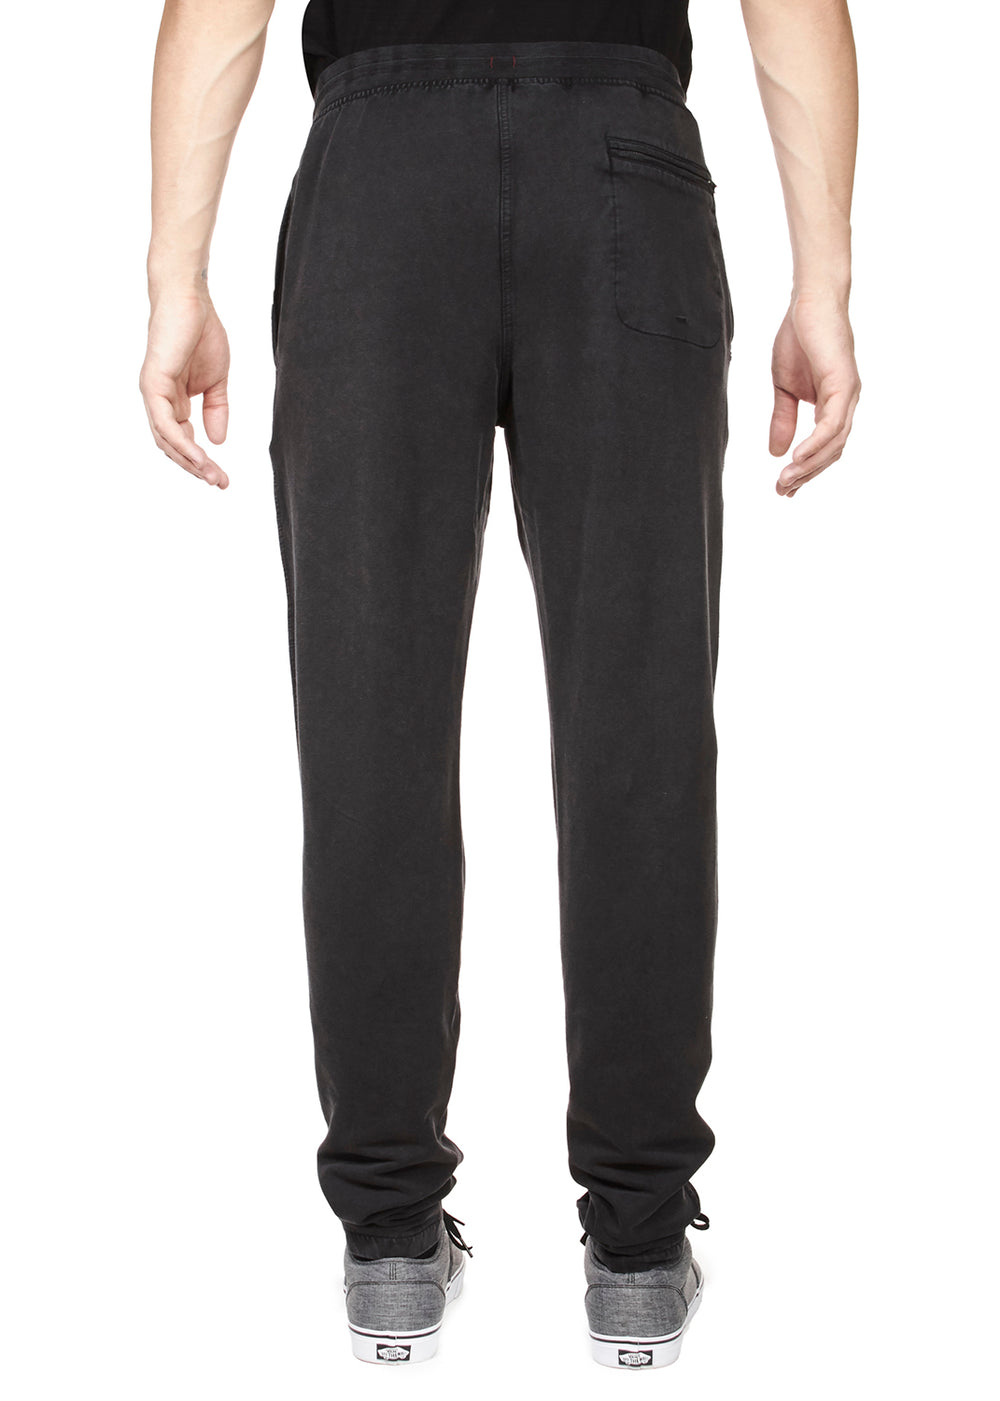 Thaddeus PAYTON Knitted Stretch French Terry Pull-on Drawstring Pants